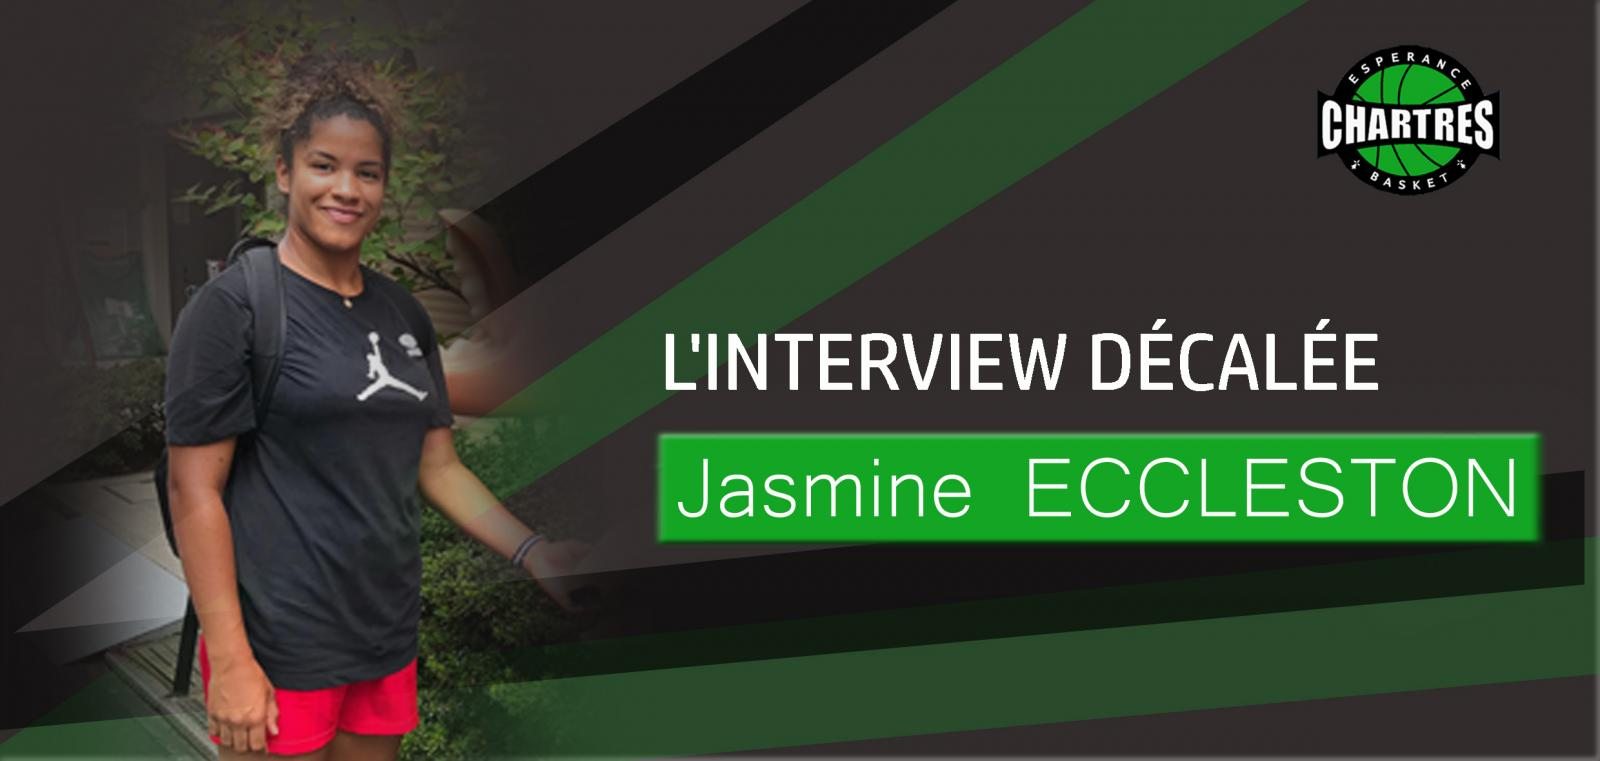 Interview décalée Jasmine ECCLESTON